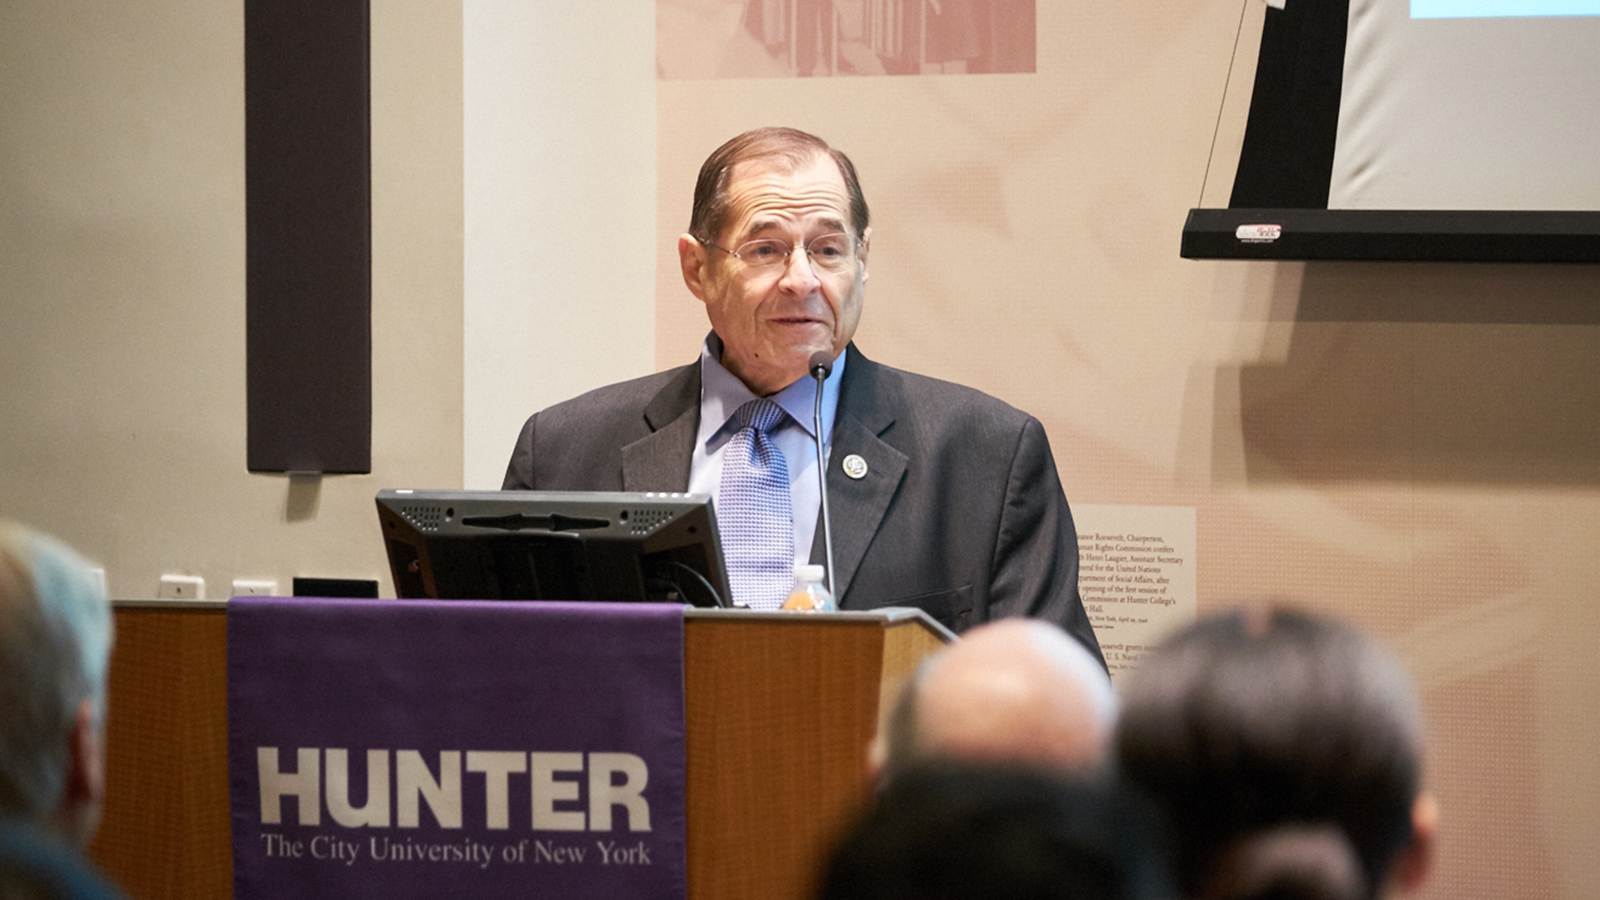 NYC Congressman Jerrold Nadler at Roosevelt House Public Policy Institute